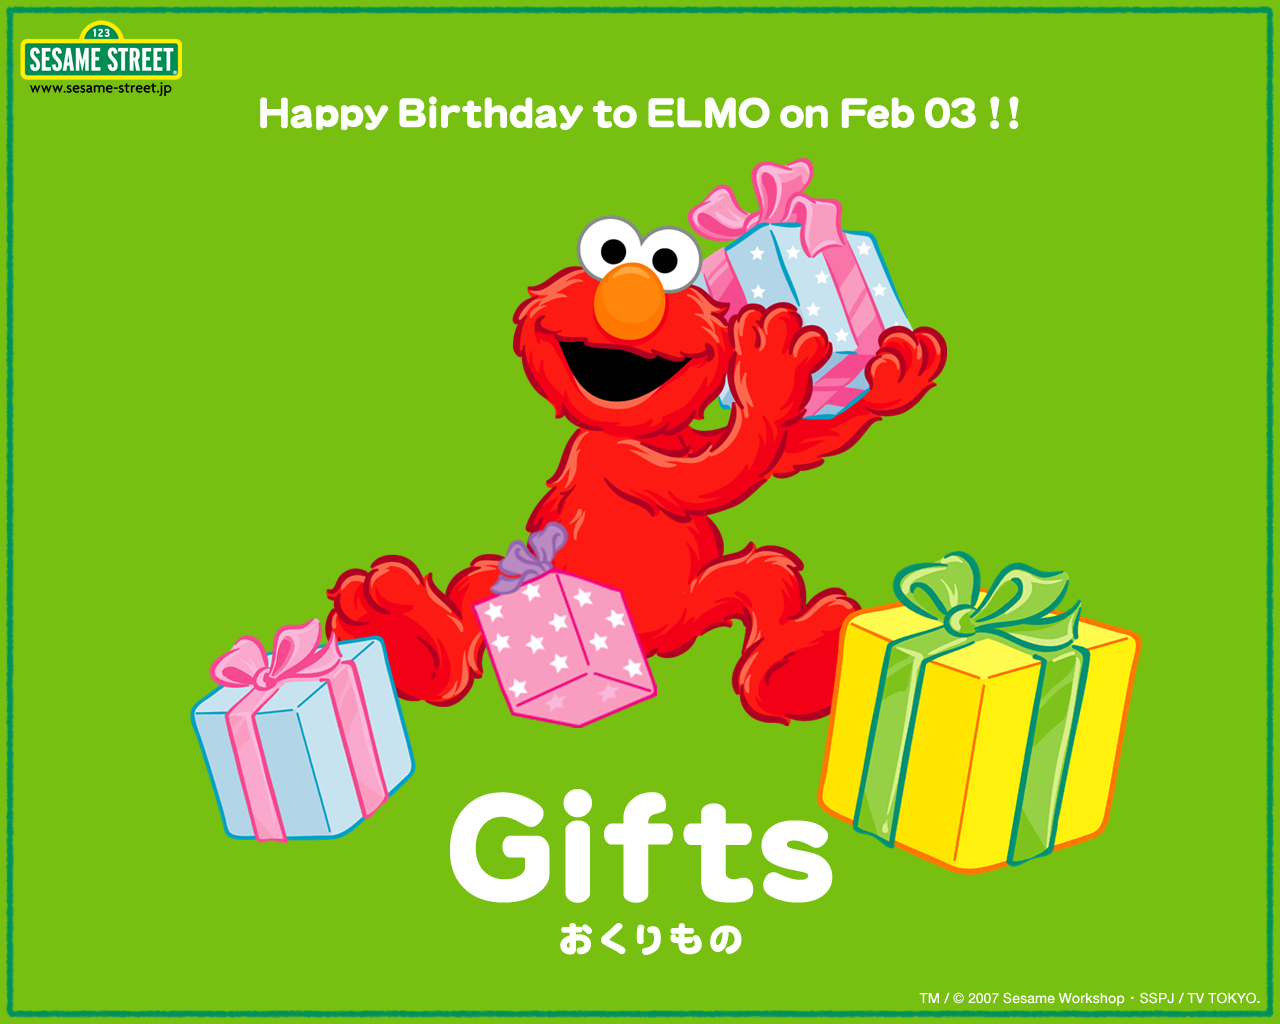 Sesame Street Images Learn Japanese HD Wallpaper And Background Photos